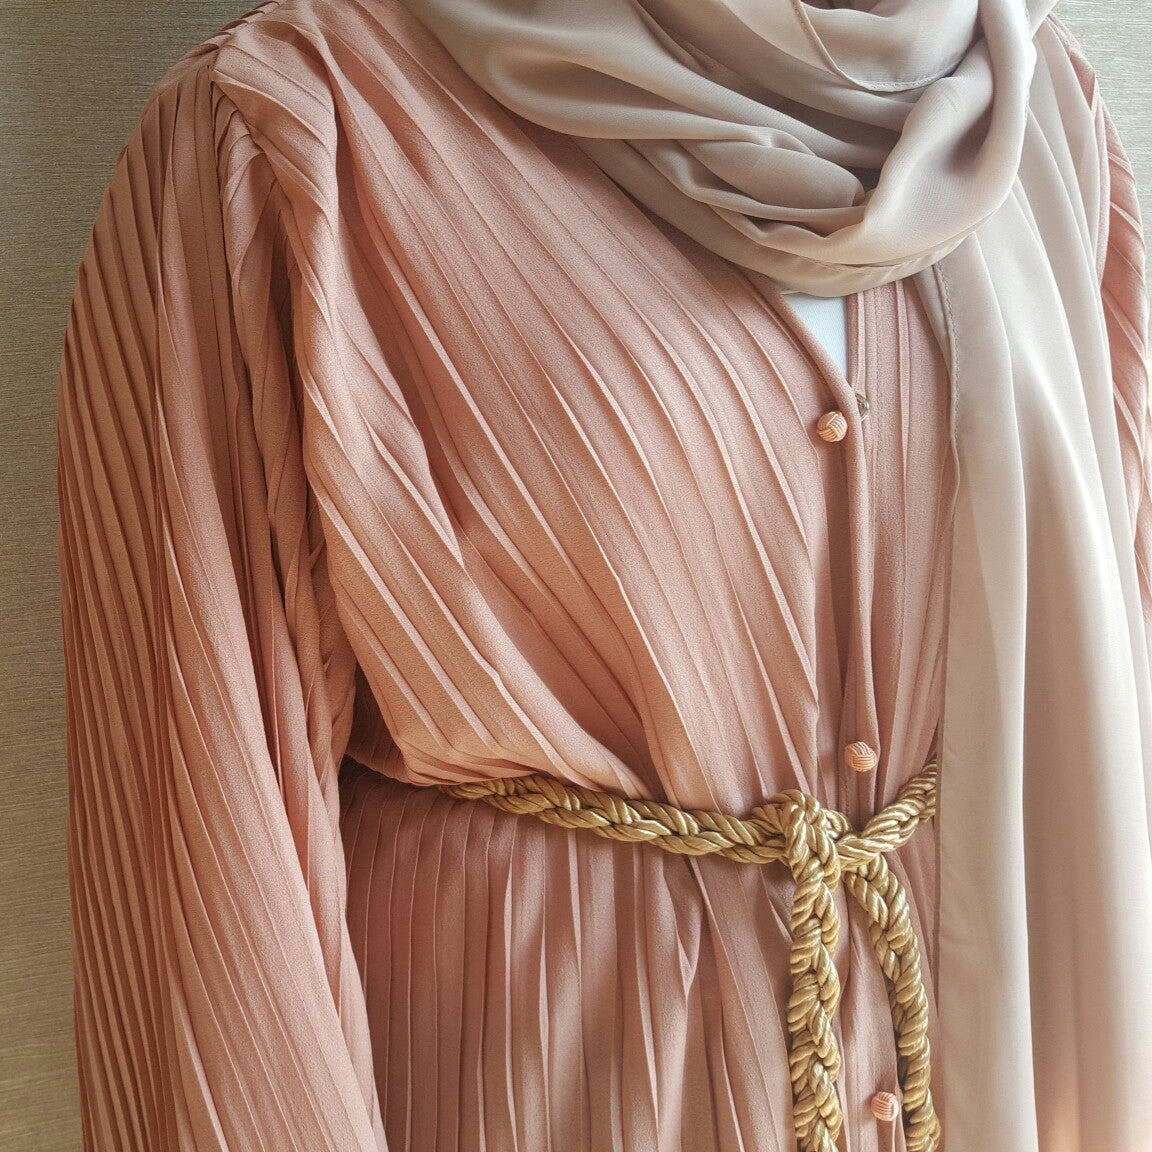 Salmon Pink Pleated Abaya Robe with robe Button & Belt